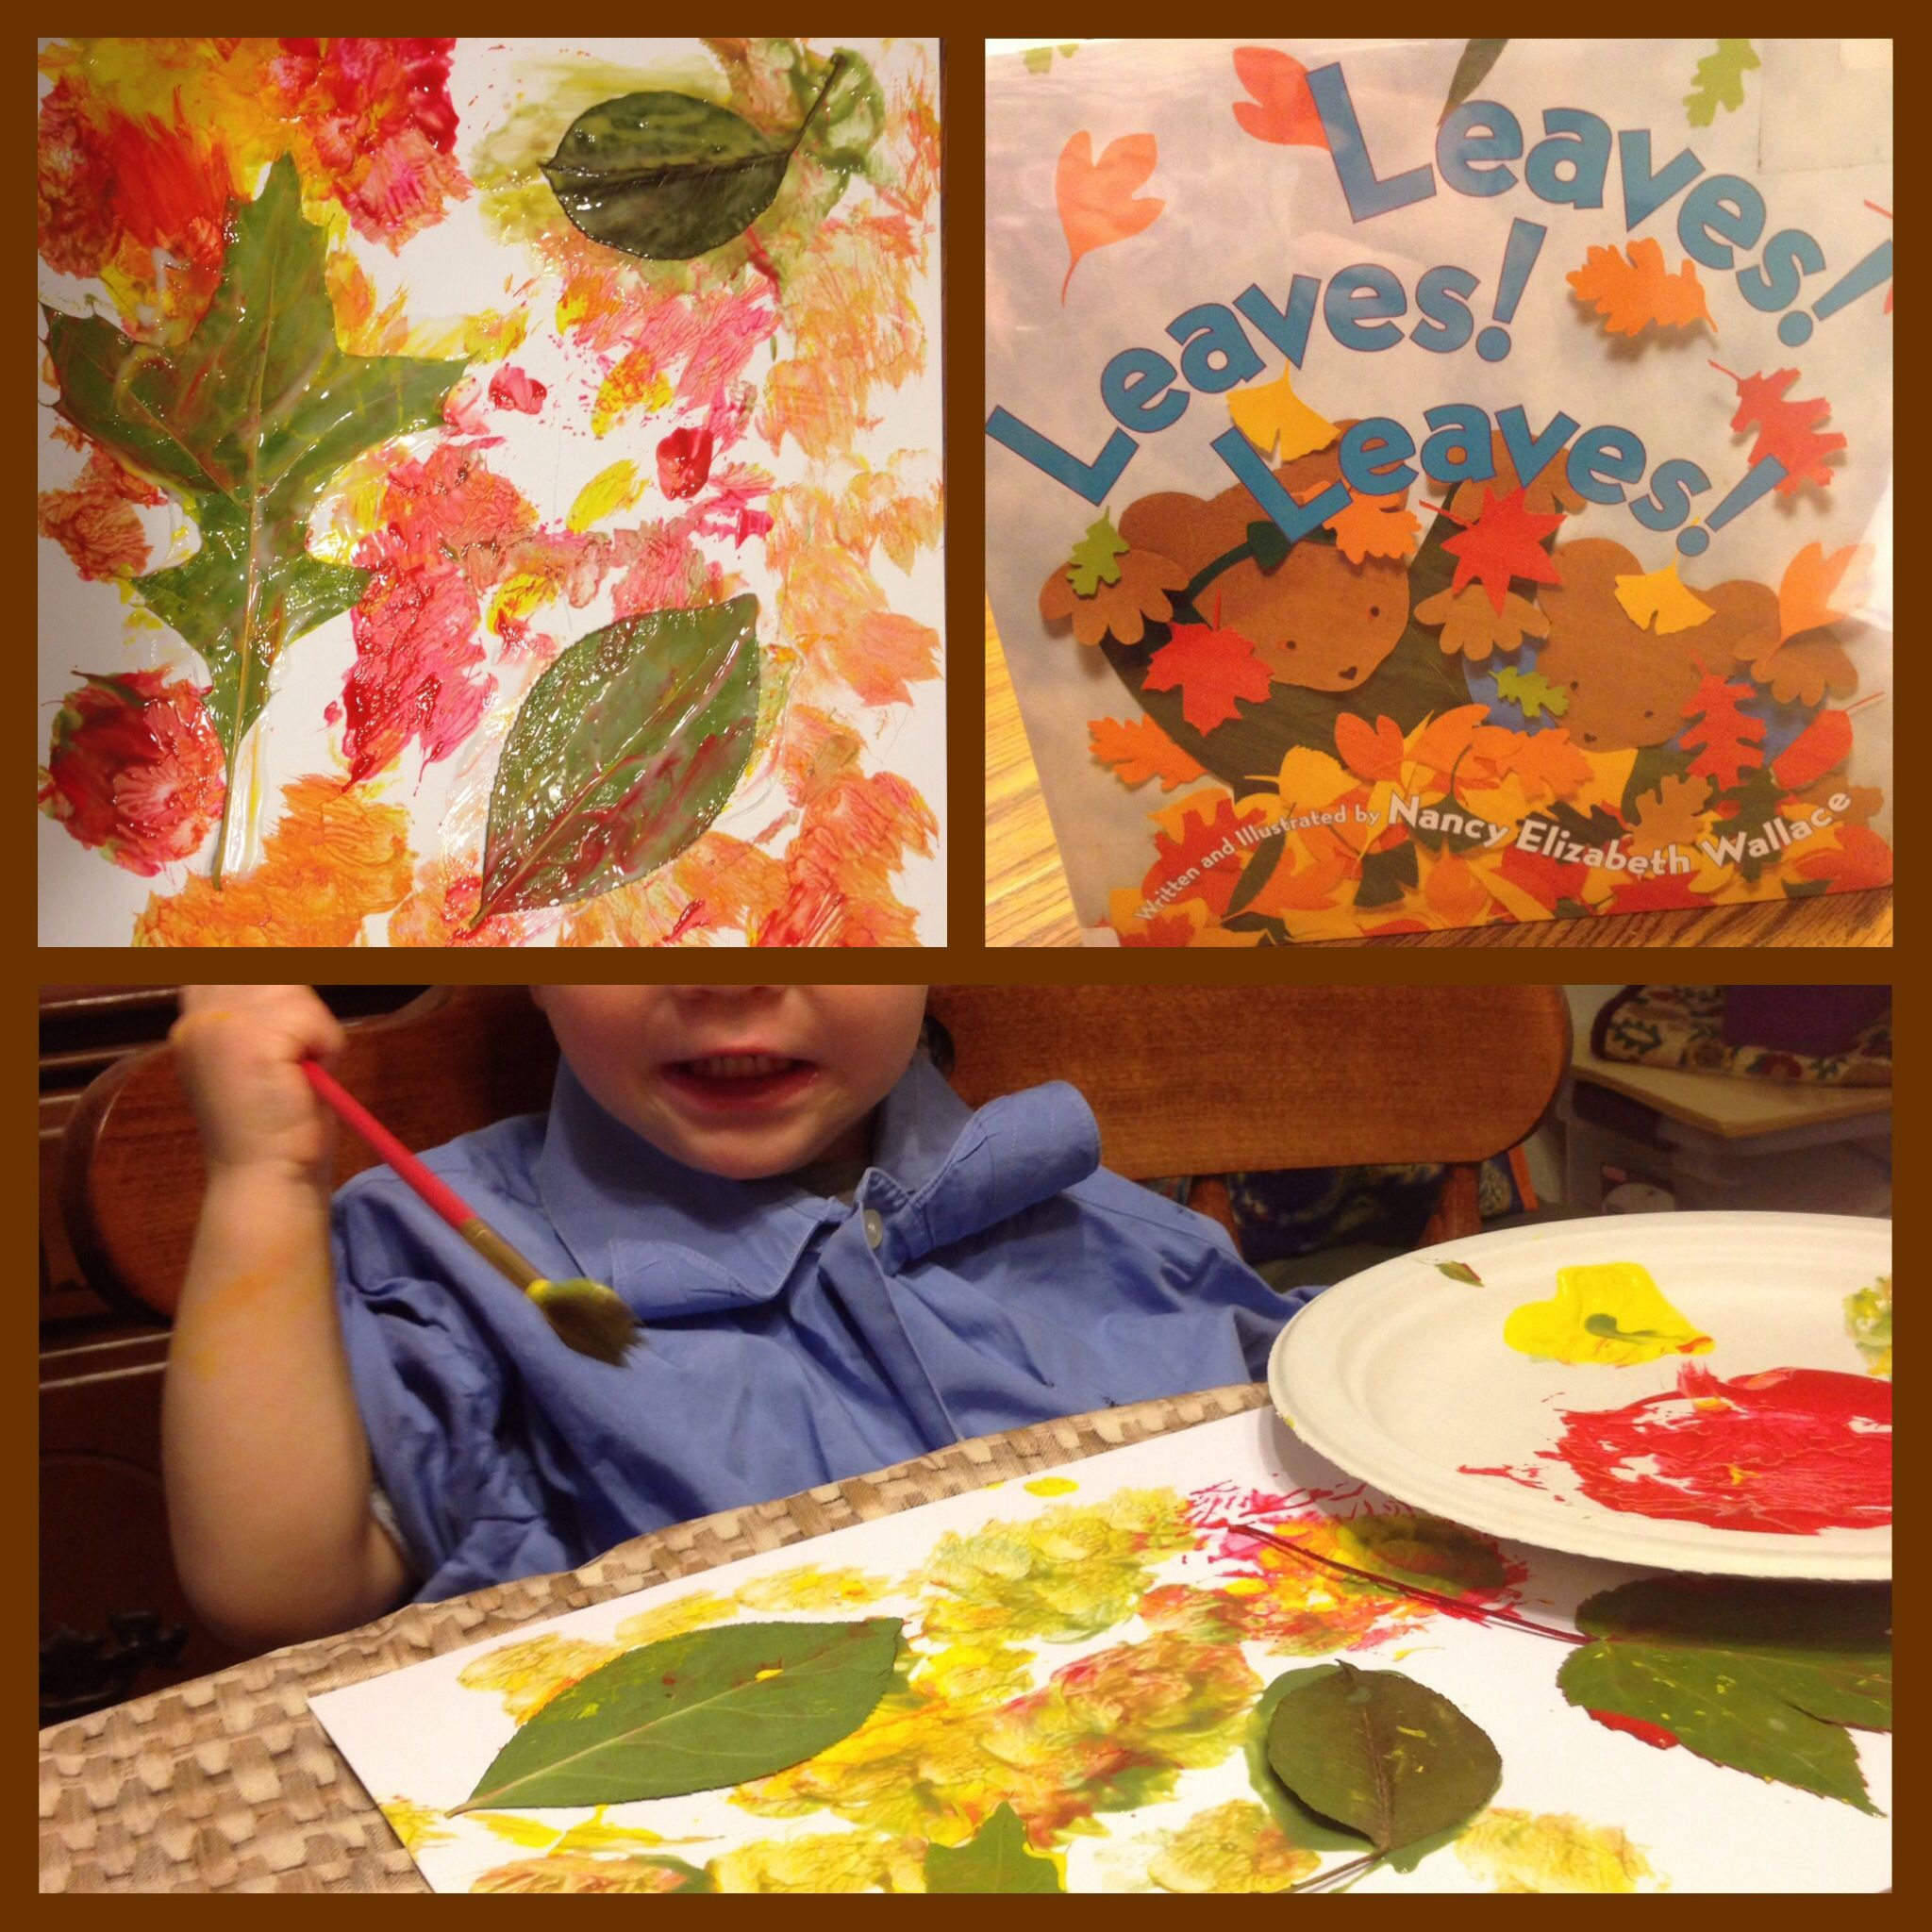 Leaf print painting. Fun for toddlers -- a bit messy but easy clean up if prepared!  I use an old plastic table cloth on the table and dress them in an old oversized T or dress shirt from my husband.